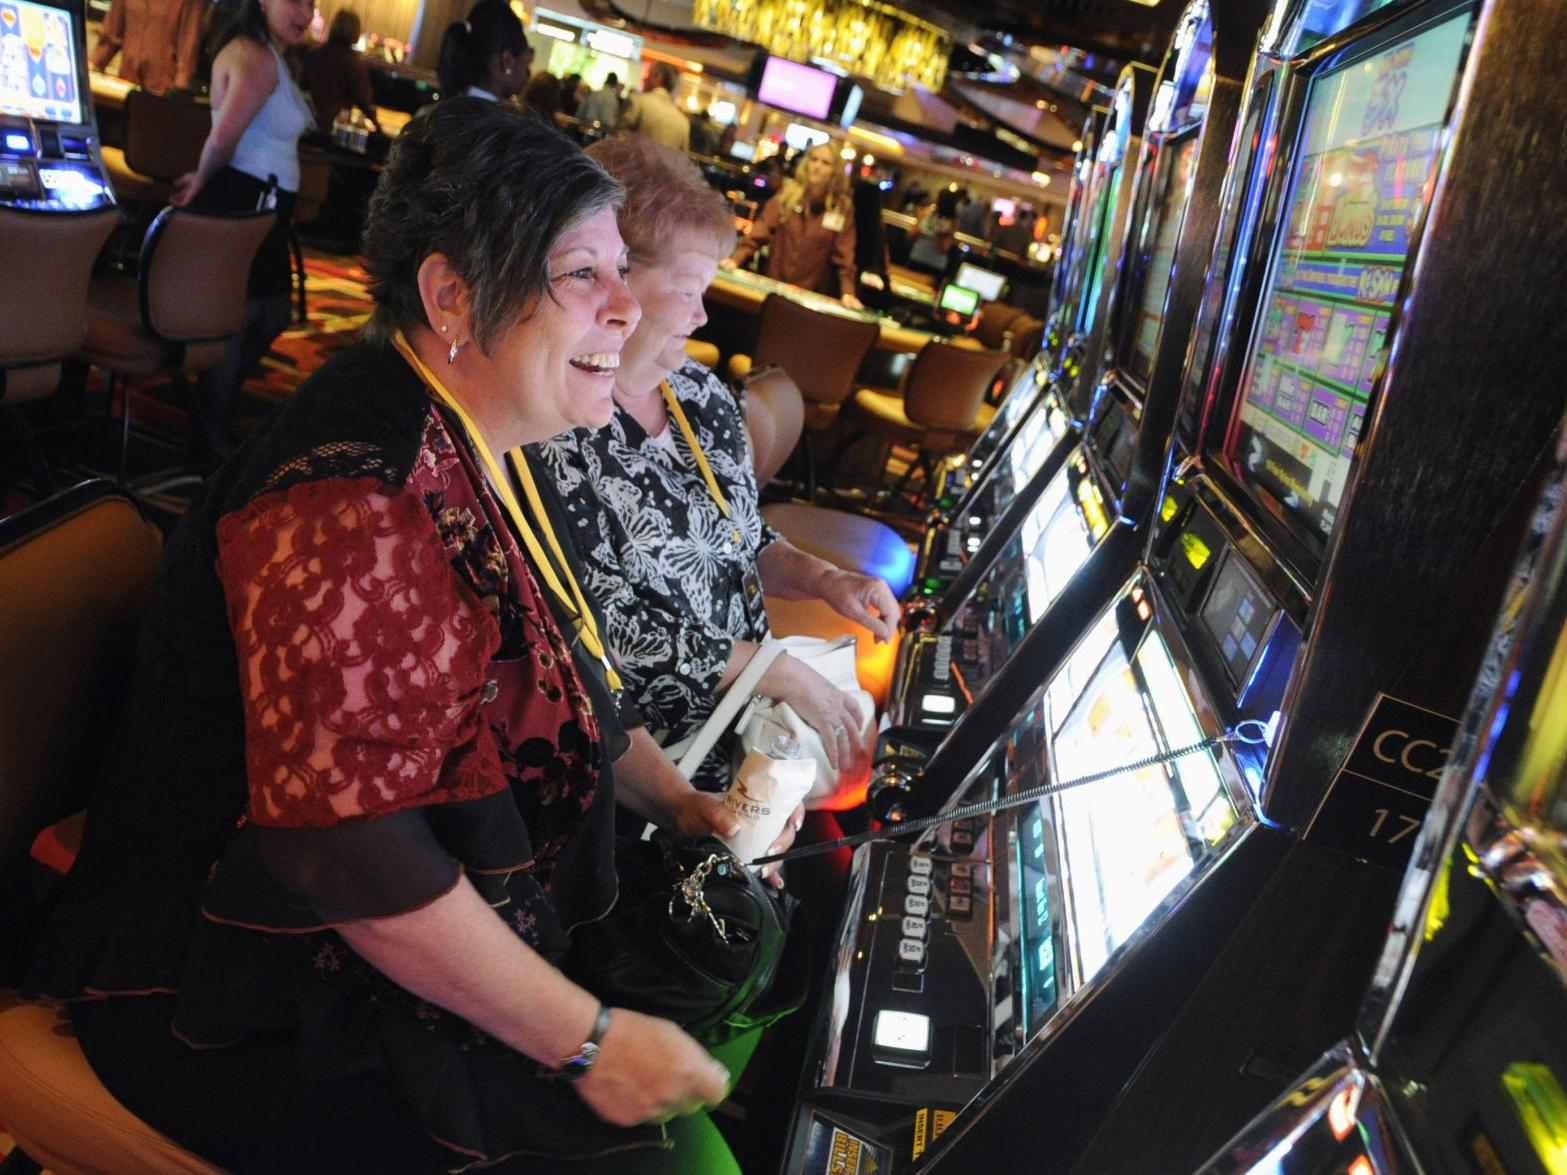 Illinois casinos, slots in bars reopen Wednesday | Gambling | nwitimes.com